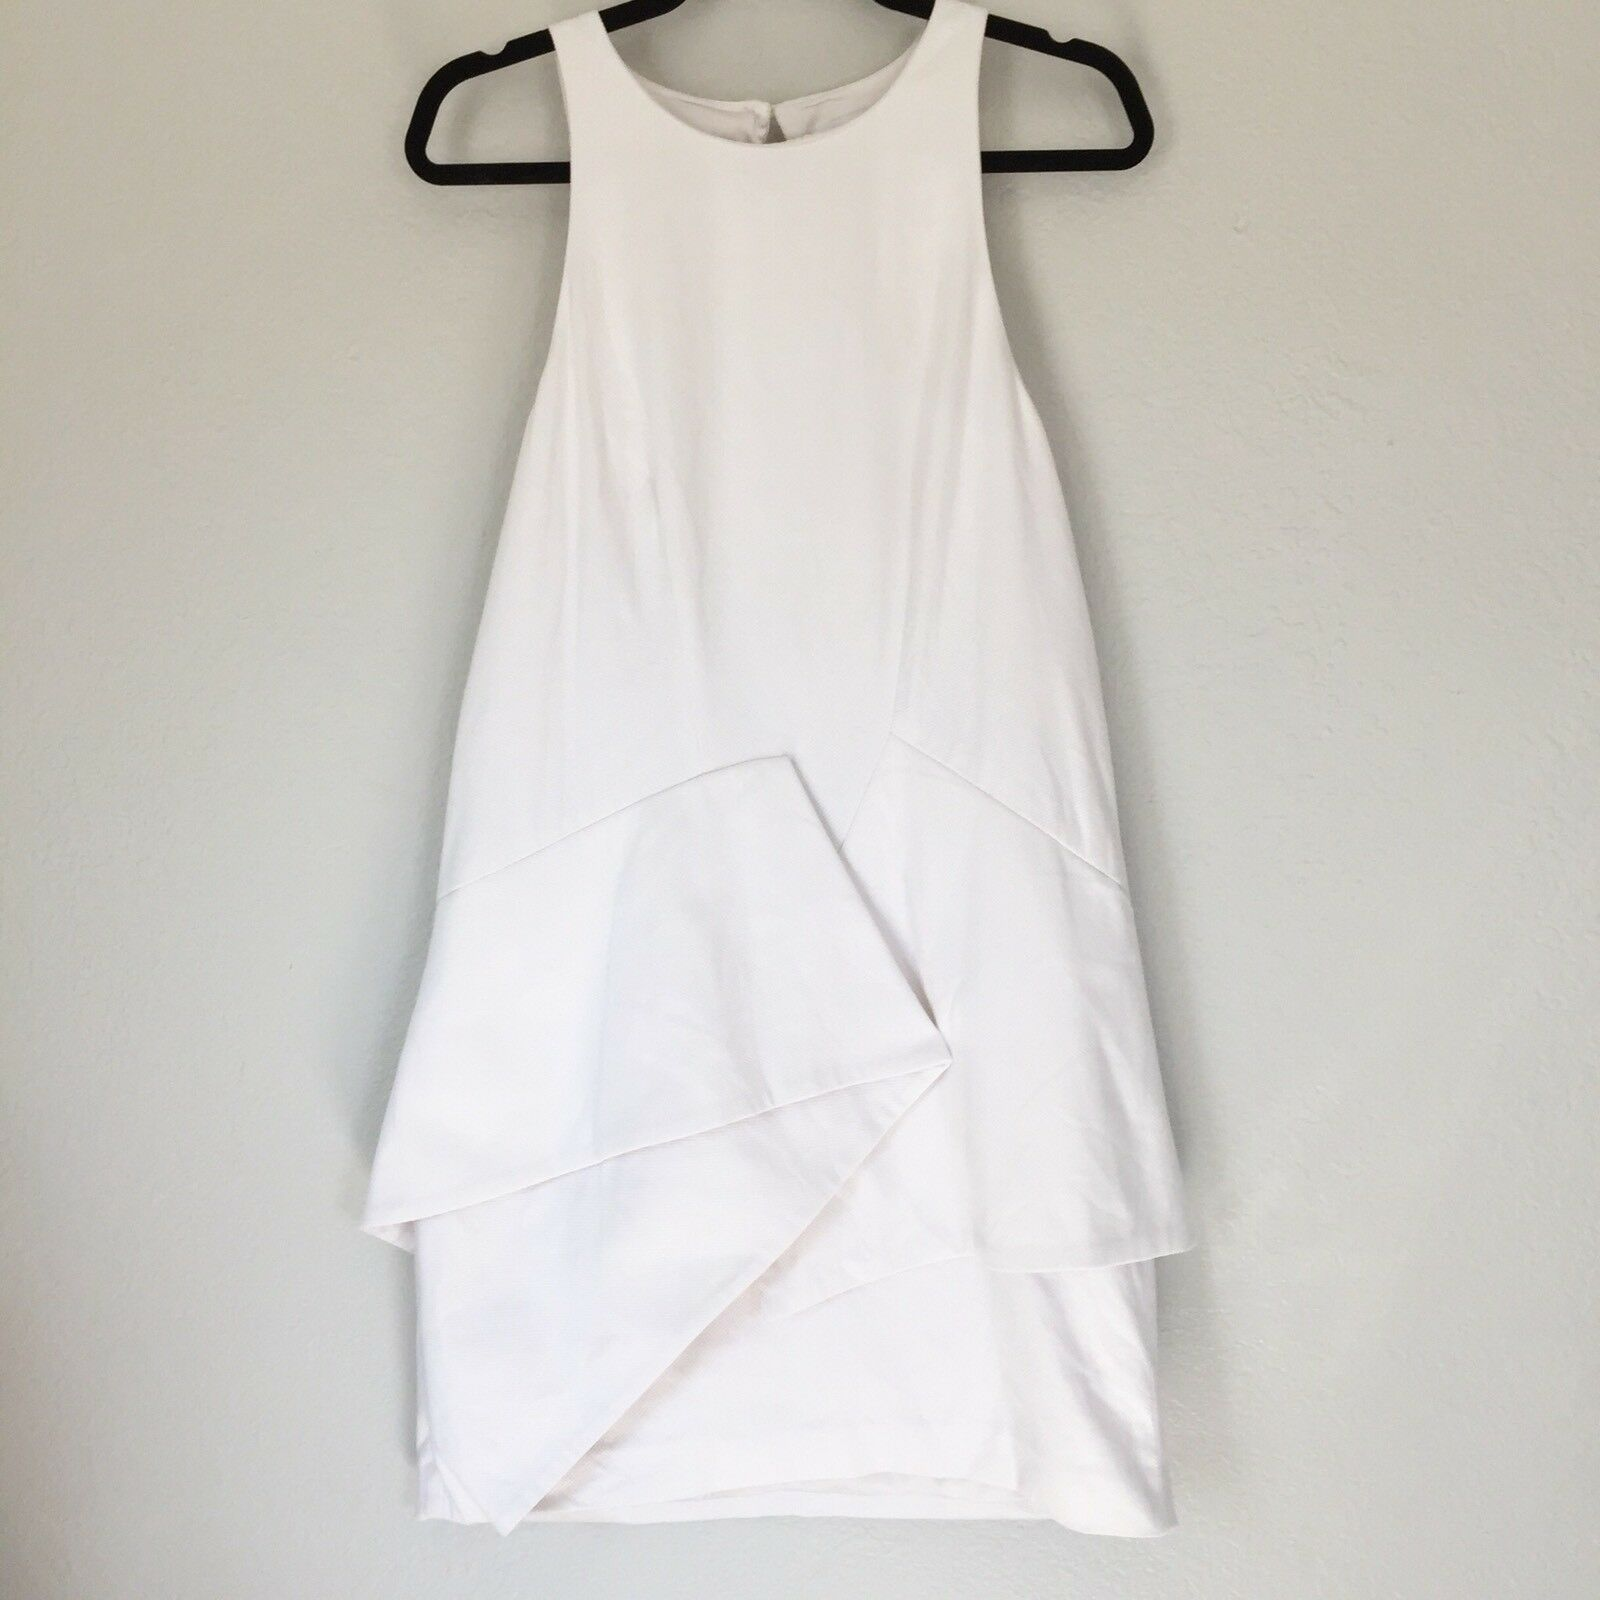 Finders Keepers Dress Size Medium